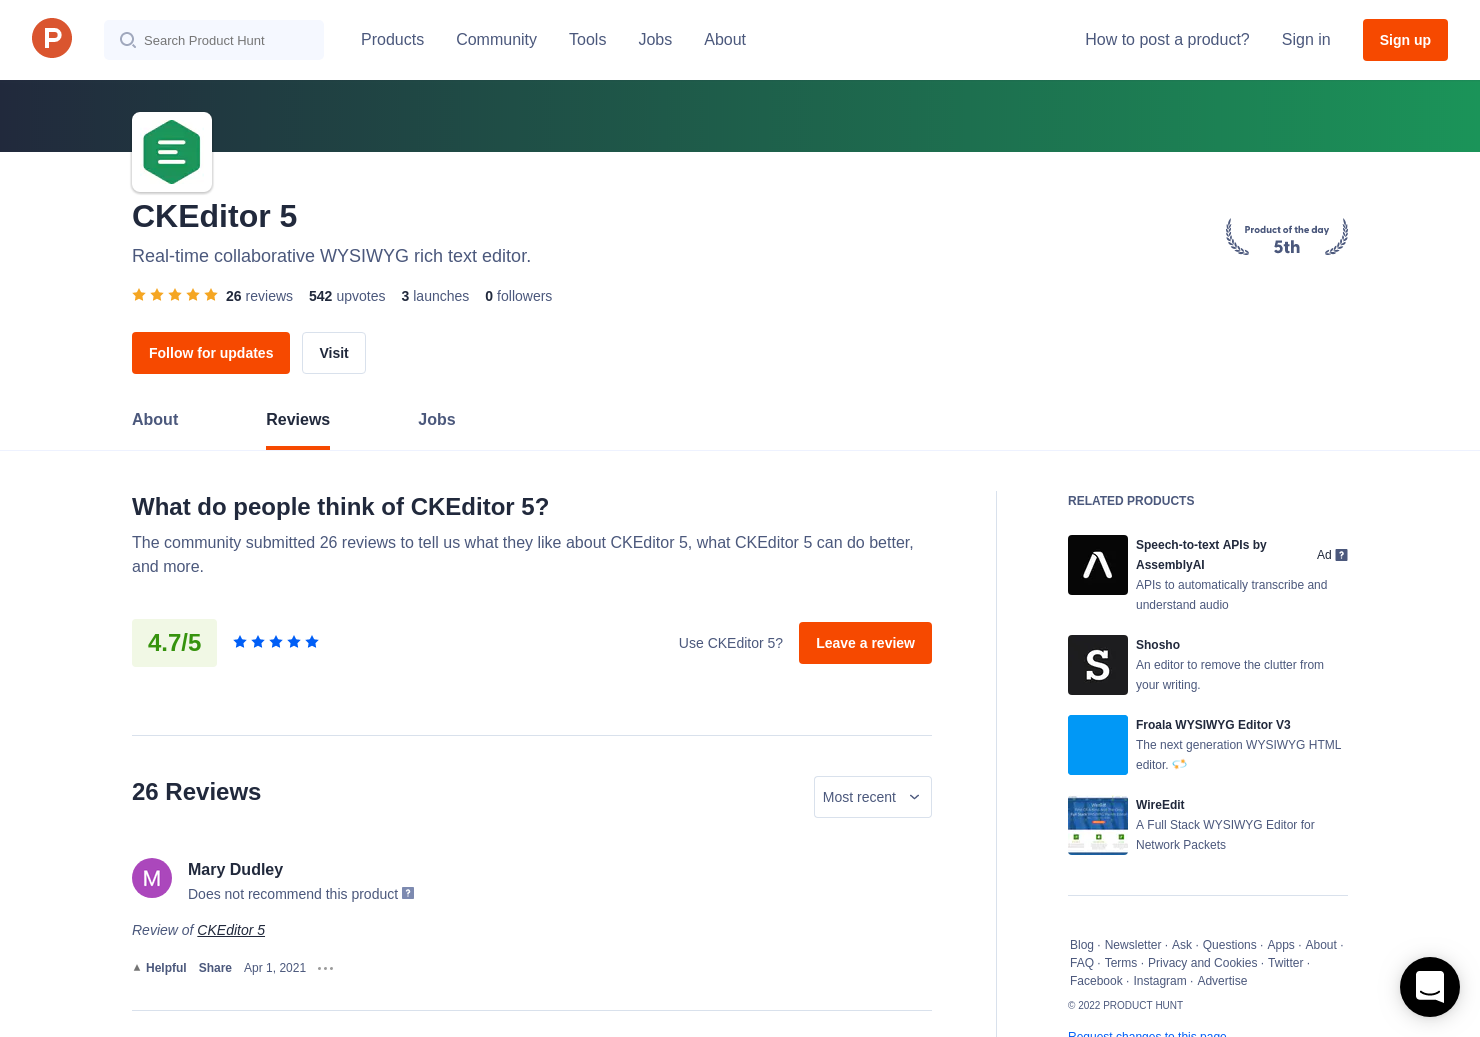 9 CKEditor 5 Reviews - Pros, Cons and Rating | Product Hunt